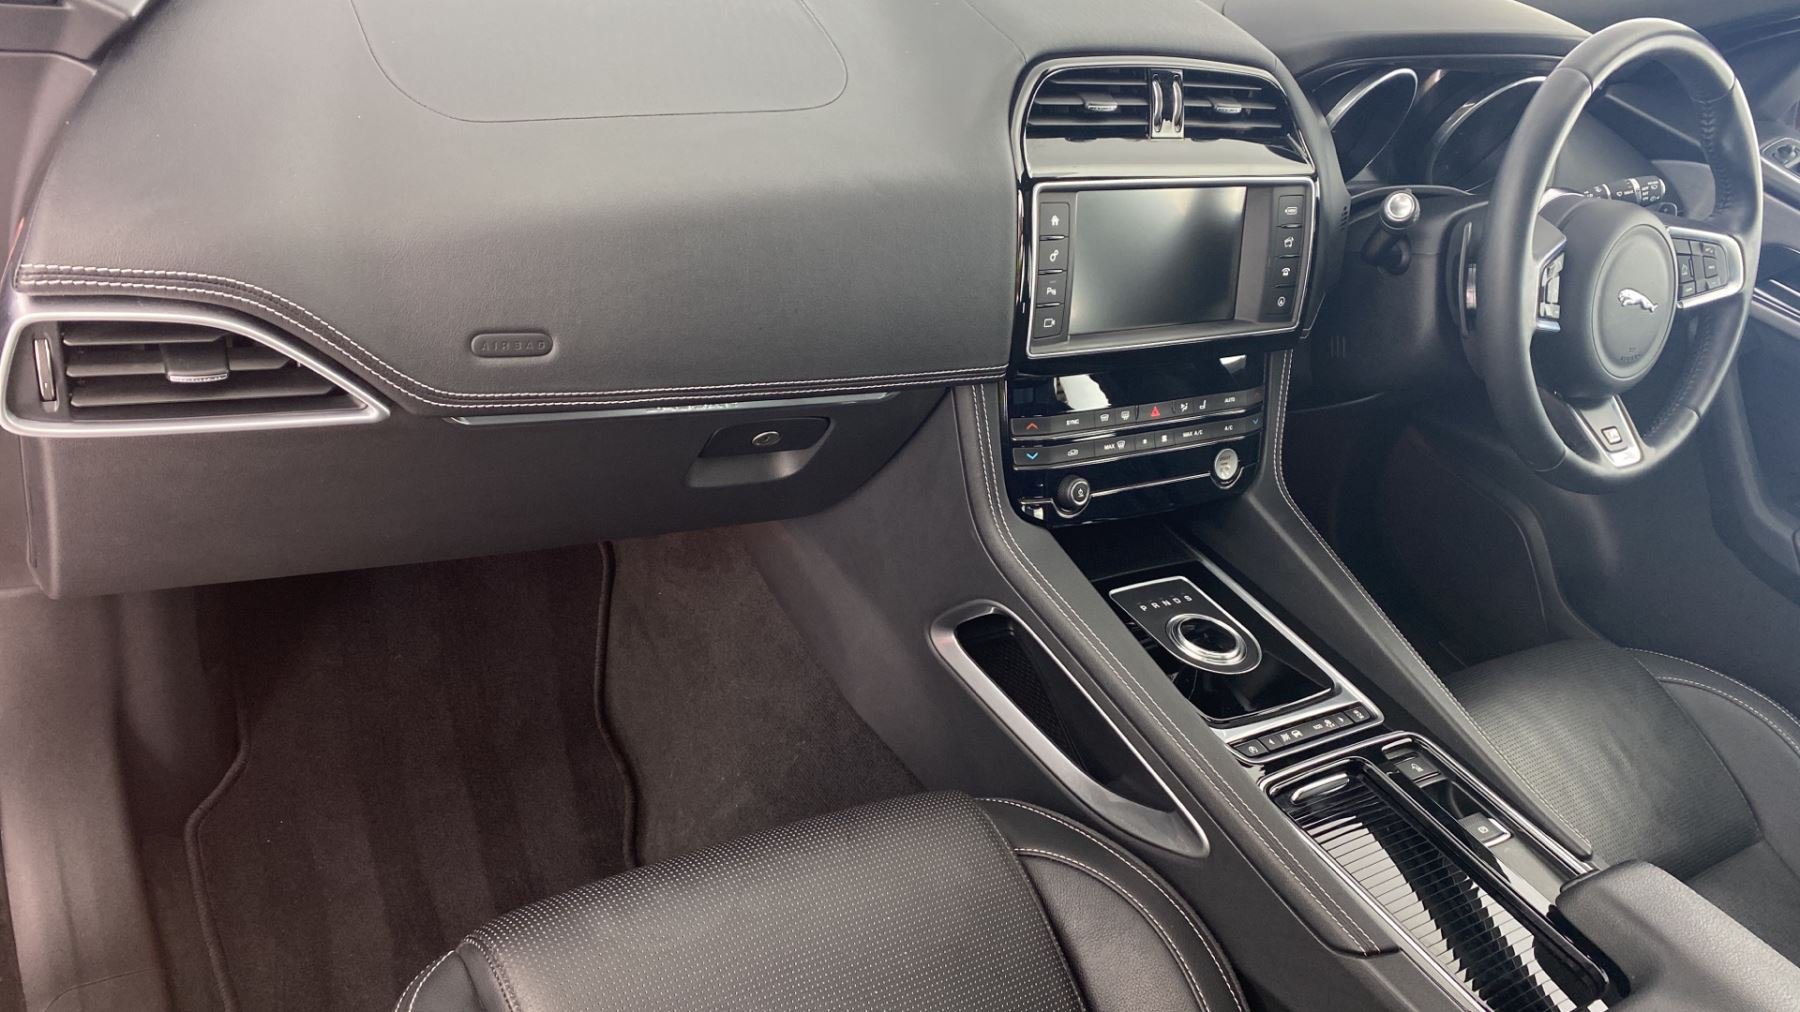 Jaguar F-PACE 2.0d R-Sport AWD - Sliding Panoramic Roof - Rear View Camera image 10